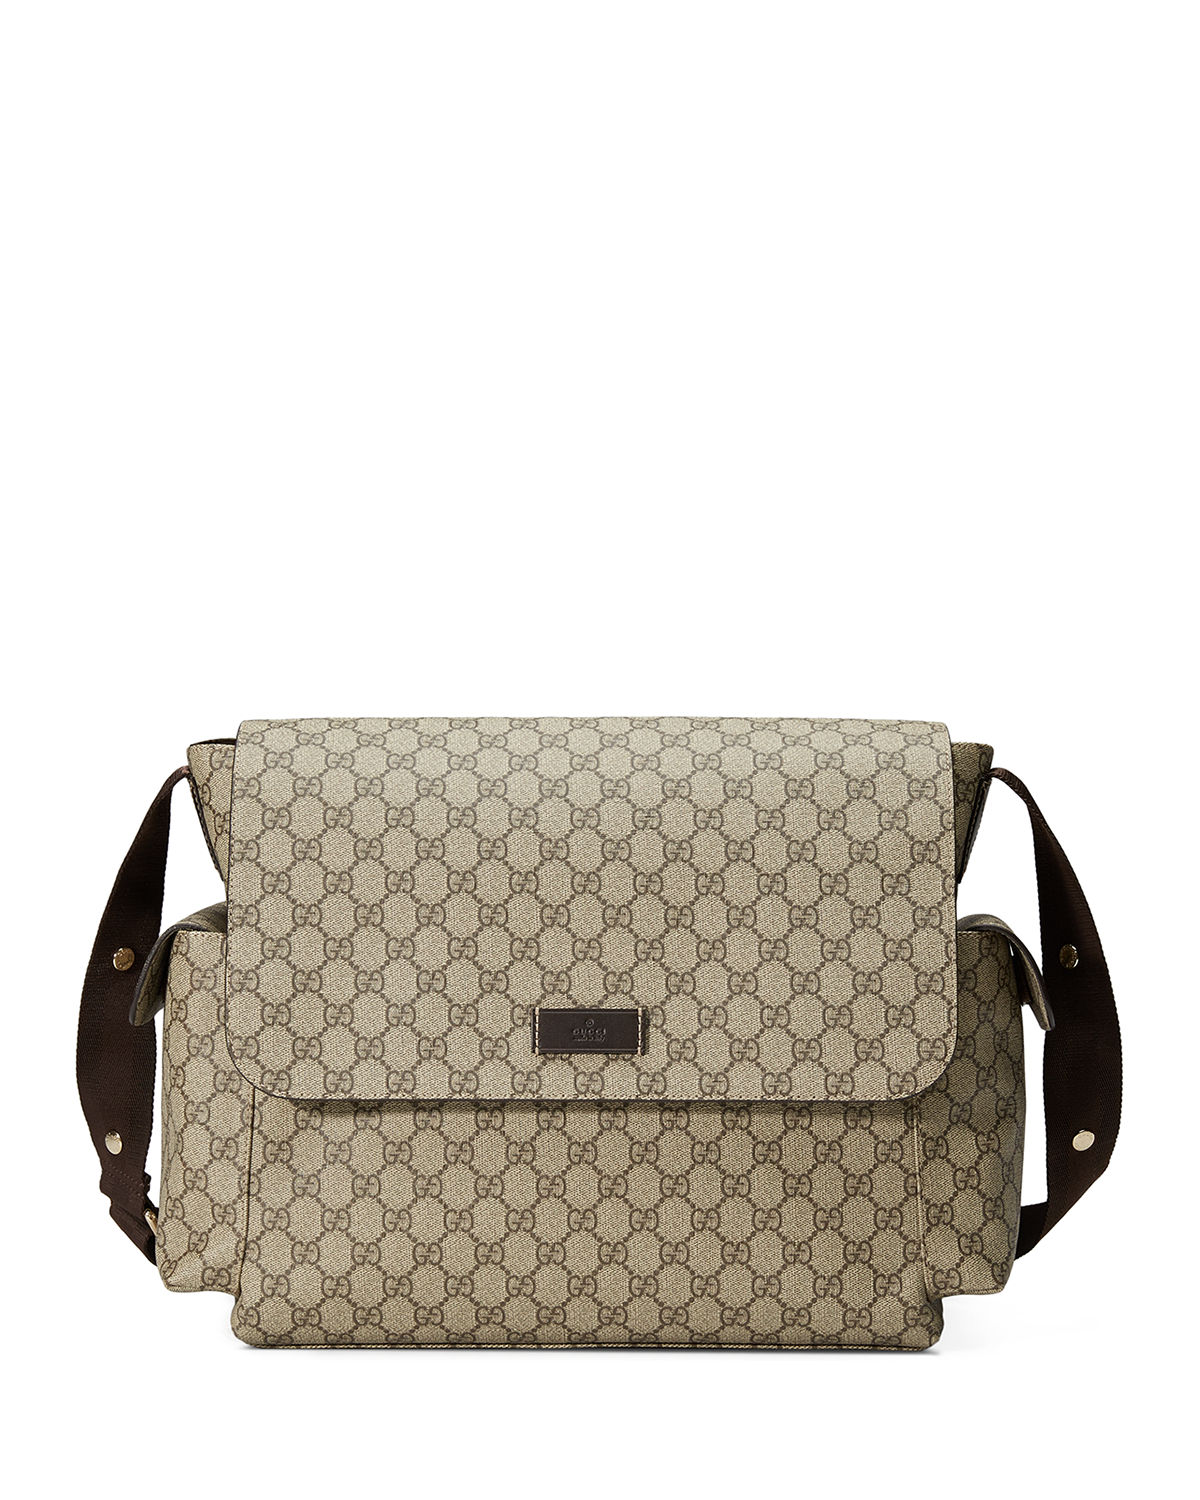 7c66fcd14ff8 Gucci Diaper Bag Neiman Marcus | Stanford Center for Opportunity ...